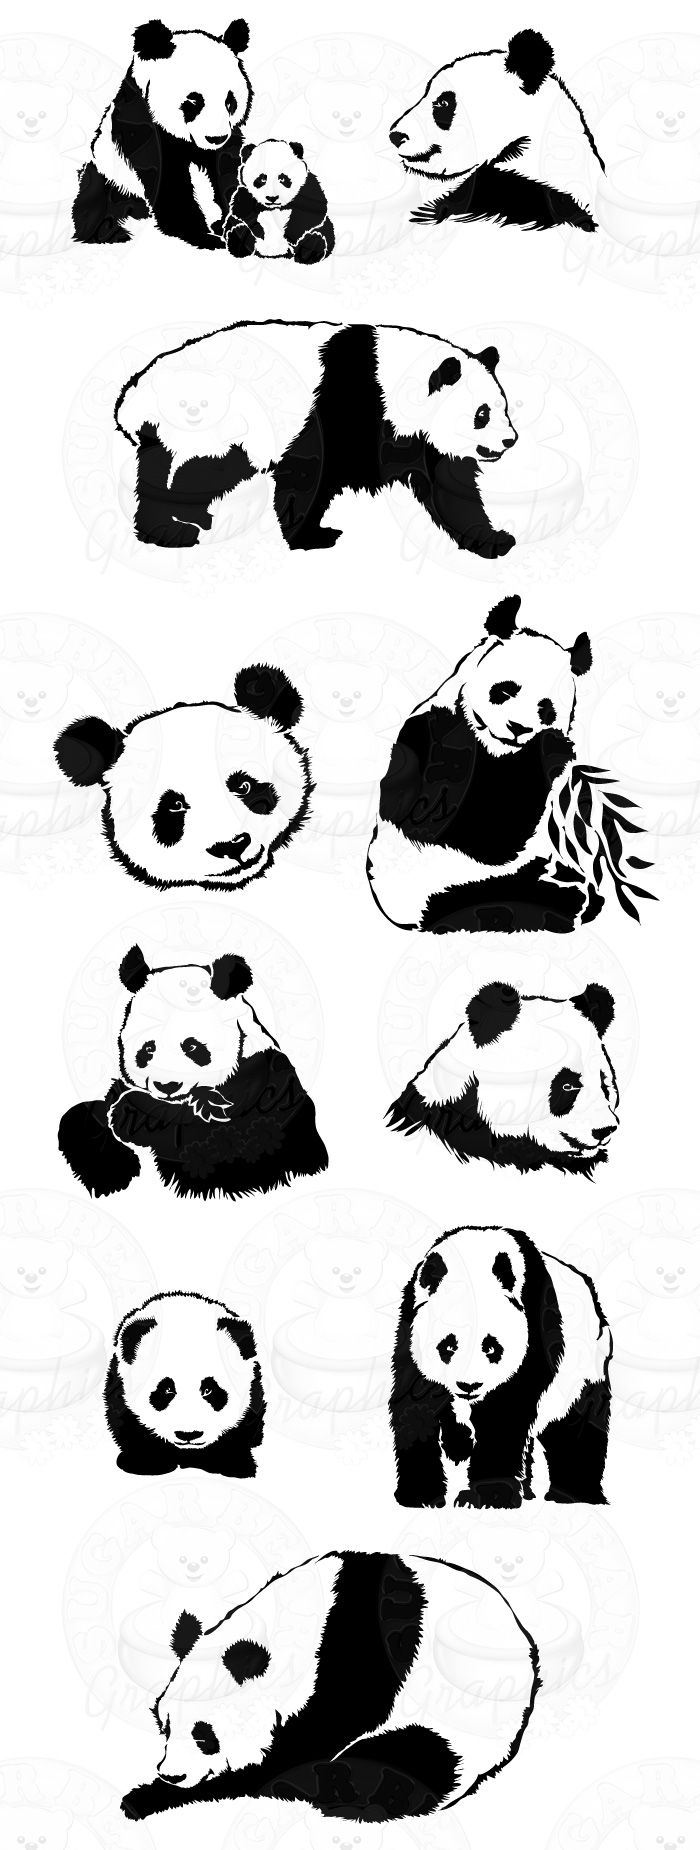 Limited Set of 10 Panda Bears